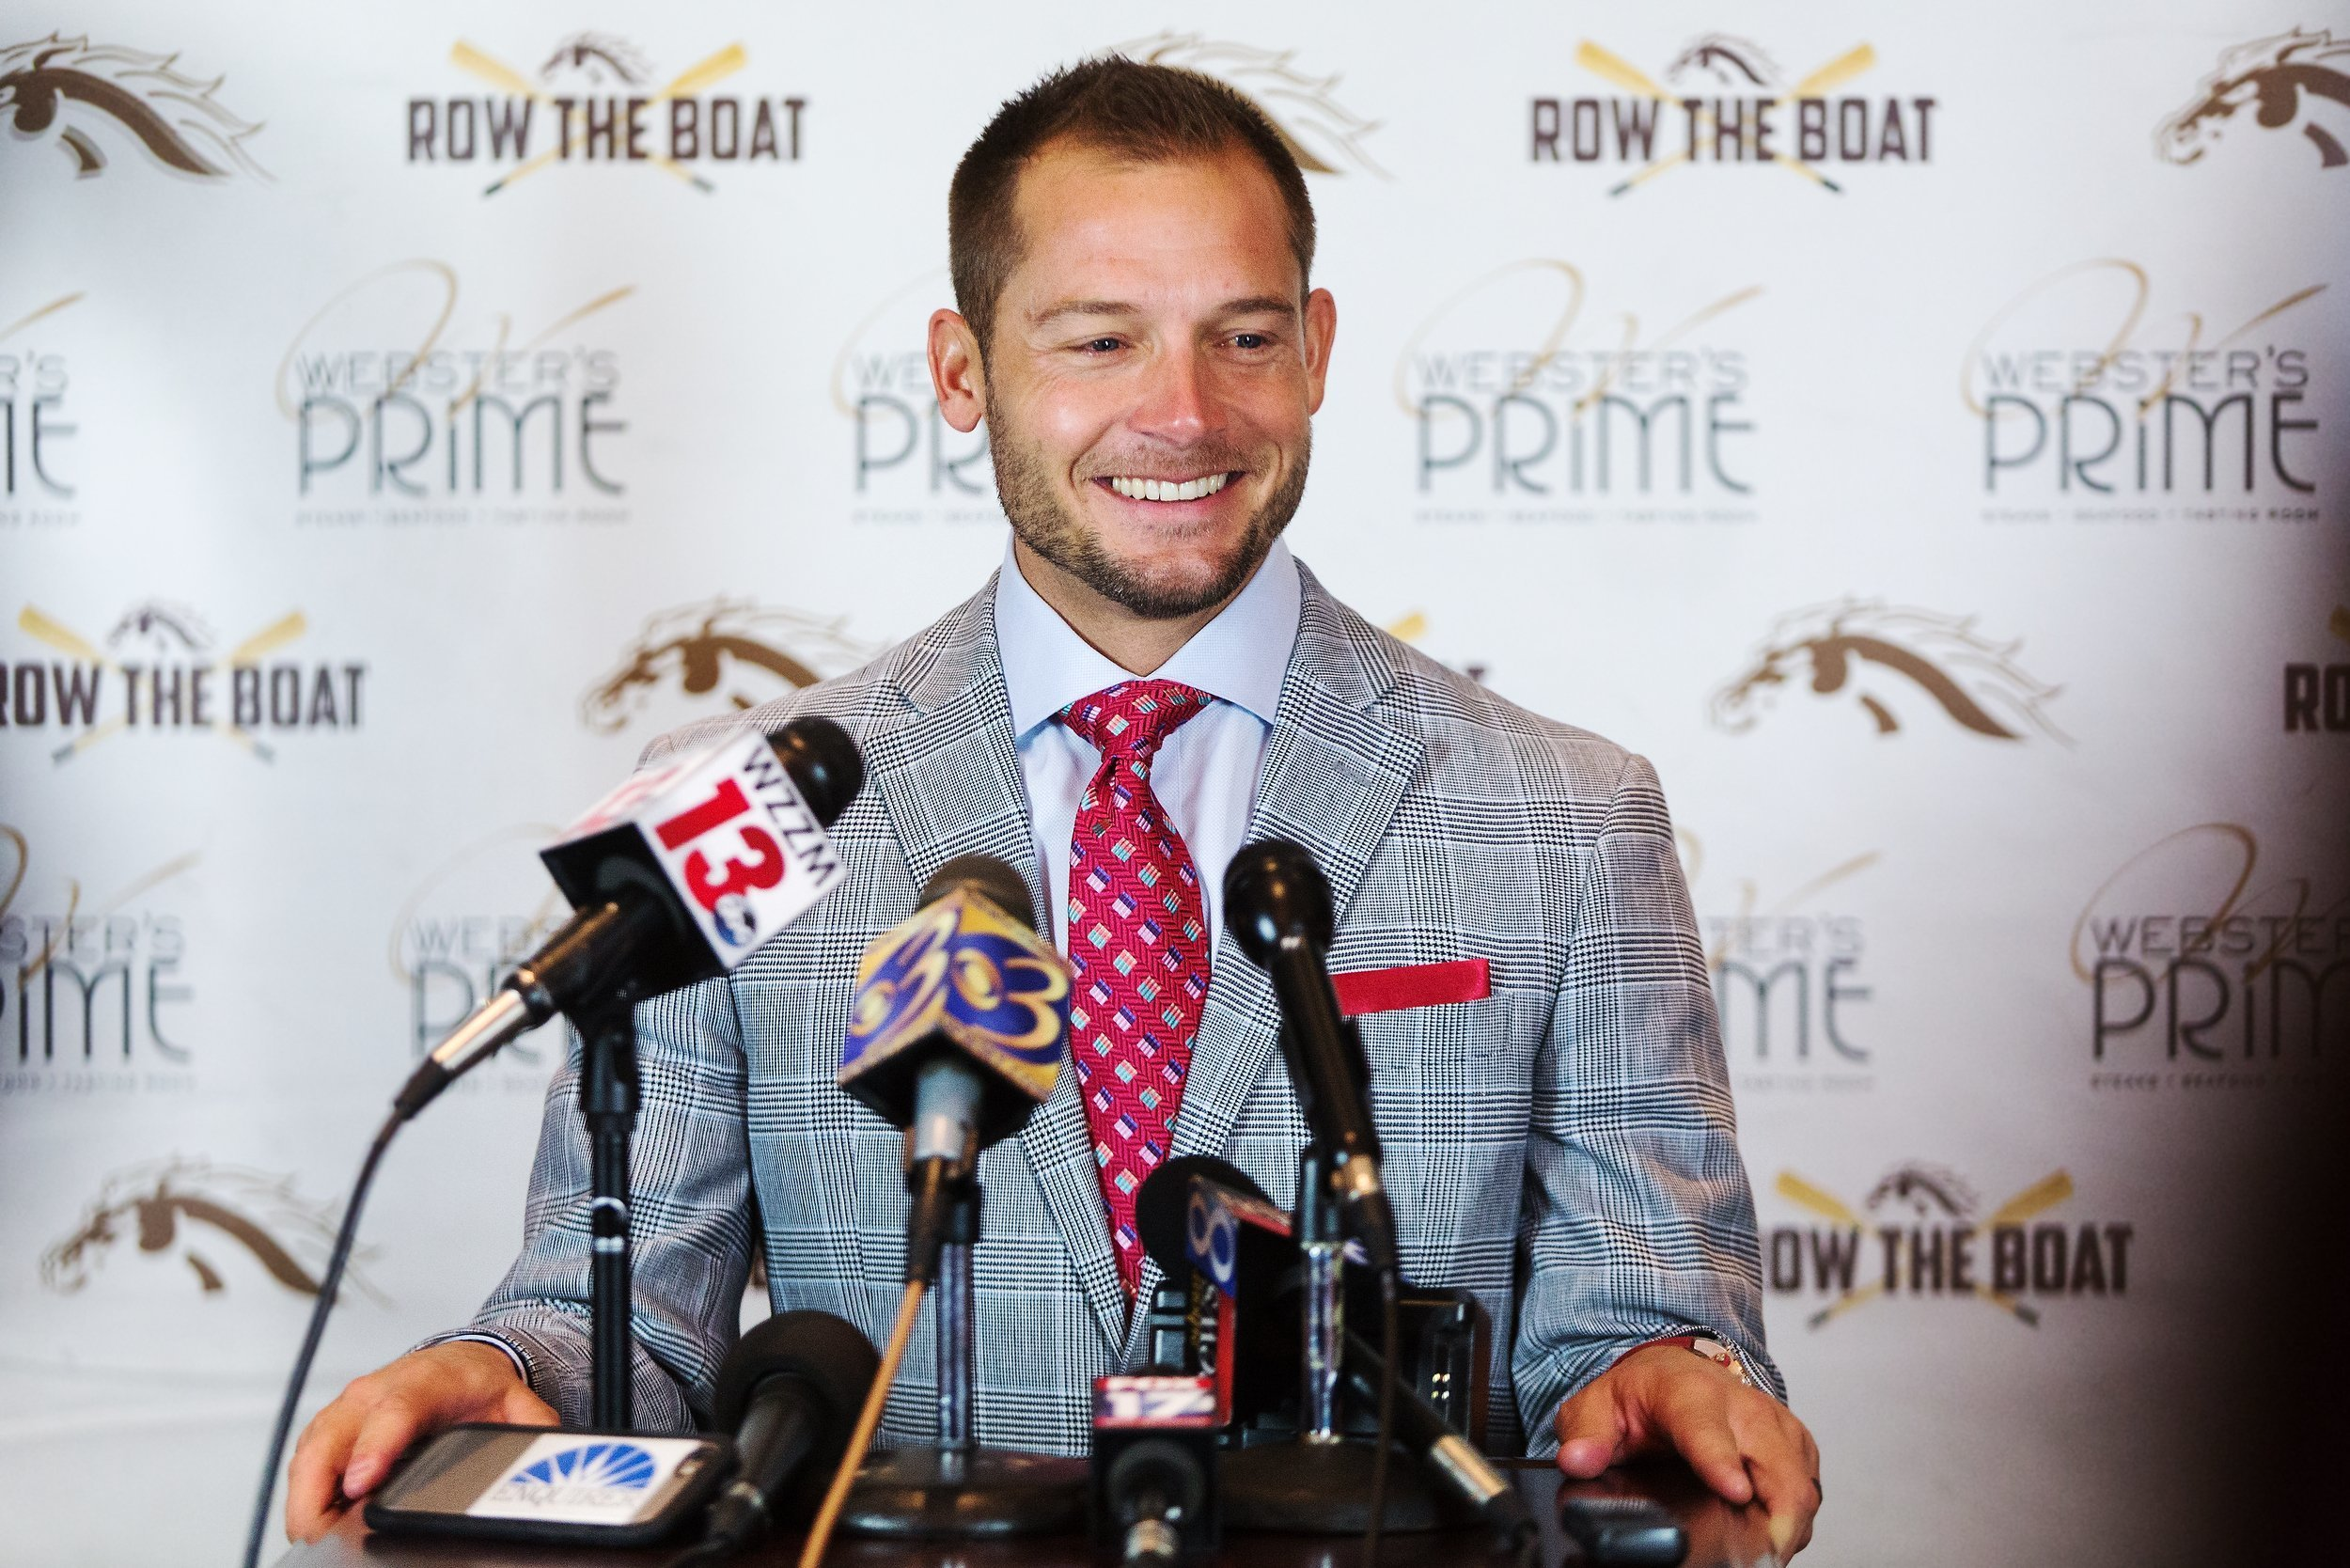 Western Michigan coach P.J. Fleck speaks during an NCAA college football press conference in Kalamazoo, Mich., on Tuesday, Nov. 29, 2016. Western Michigan takes on Ohio in the Mid-American Conference championship game on Friday in Detroit. (Bryan Bennett/